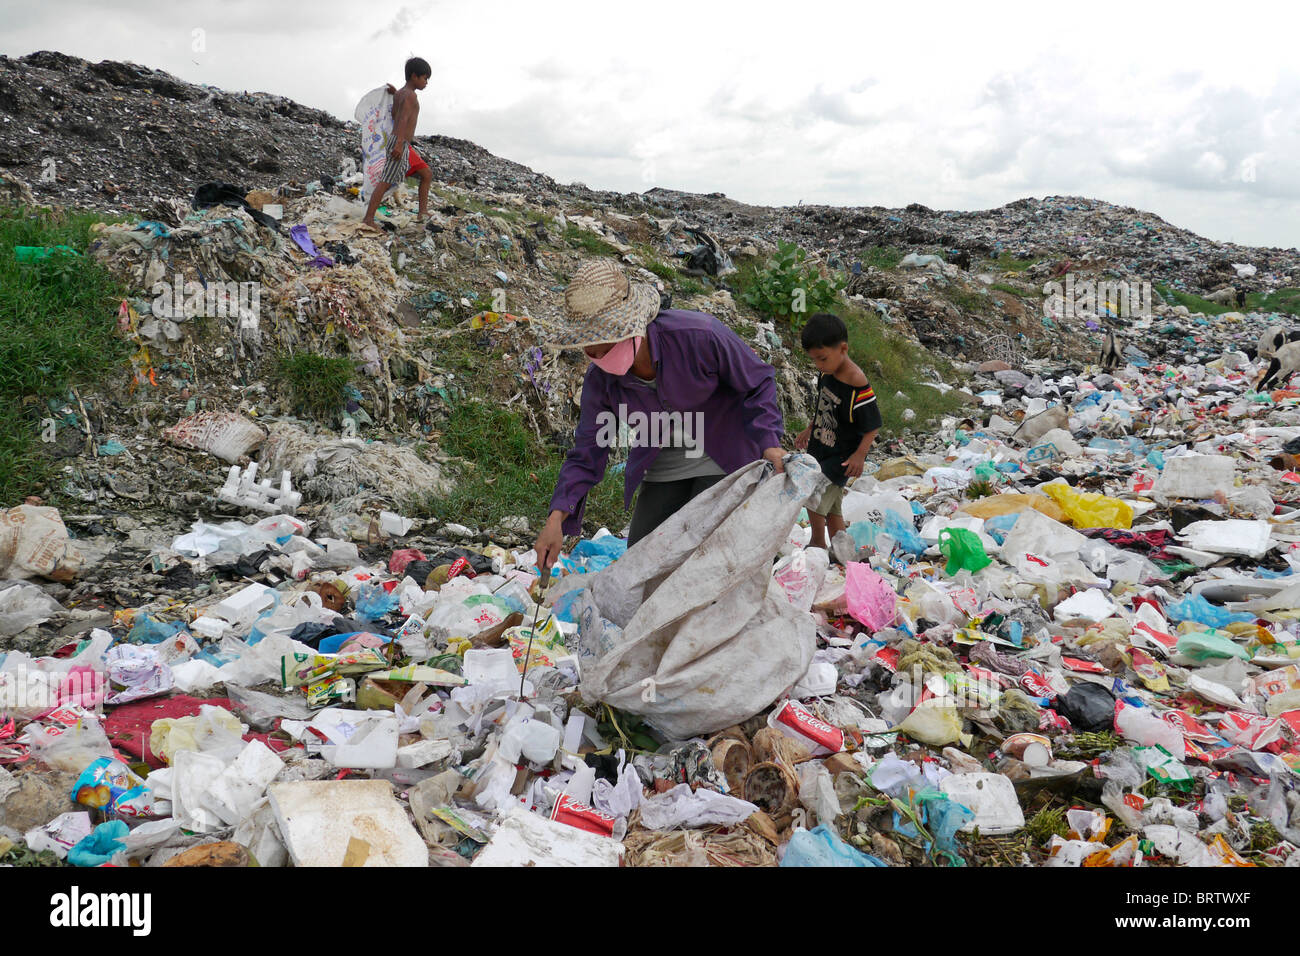 CAMBODIA Scavenger Soun Srey Thouch searching for recyclable materials on Phnom Penh's Mean Caeay garbage dump. - Stock Image